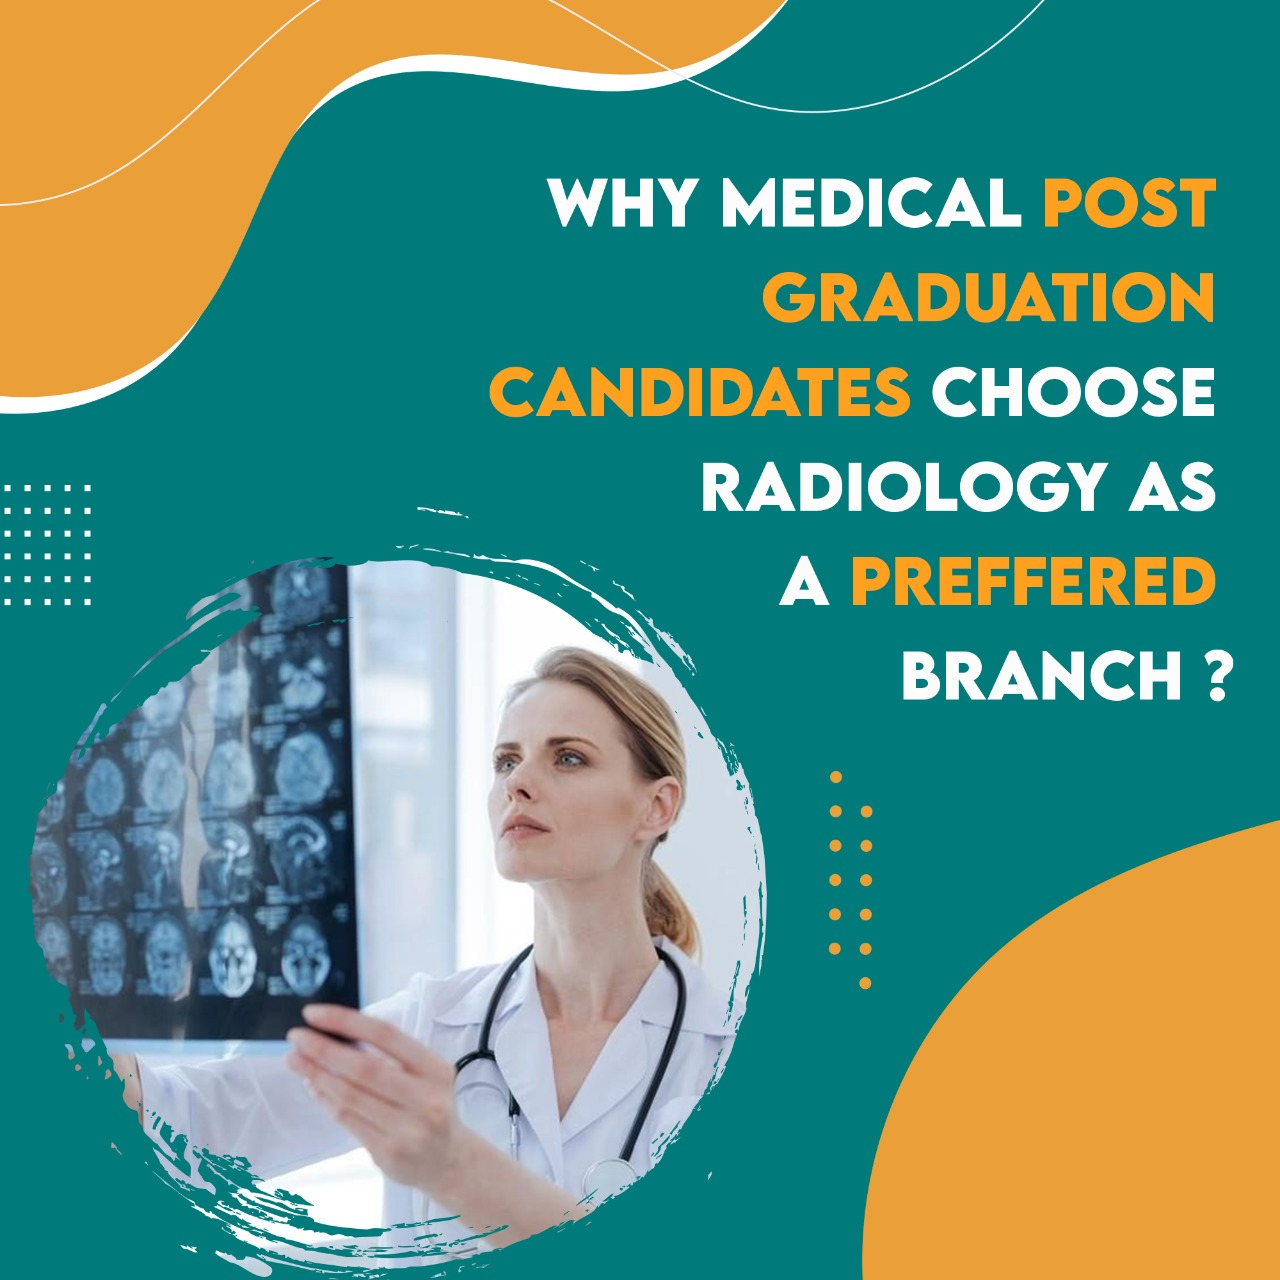 WHY MEDICAL POST GRADUATION CANDIDATES CHOOSE RADIOLOGY AS A PREFFERED BRANCH